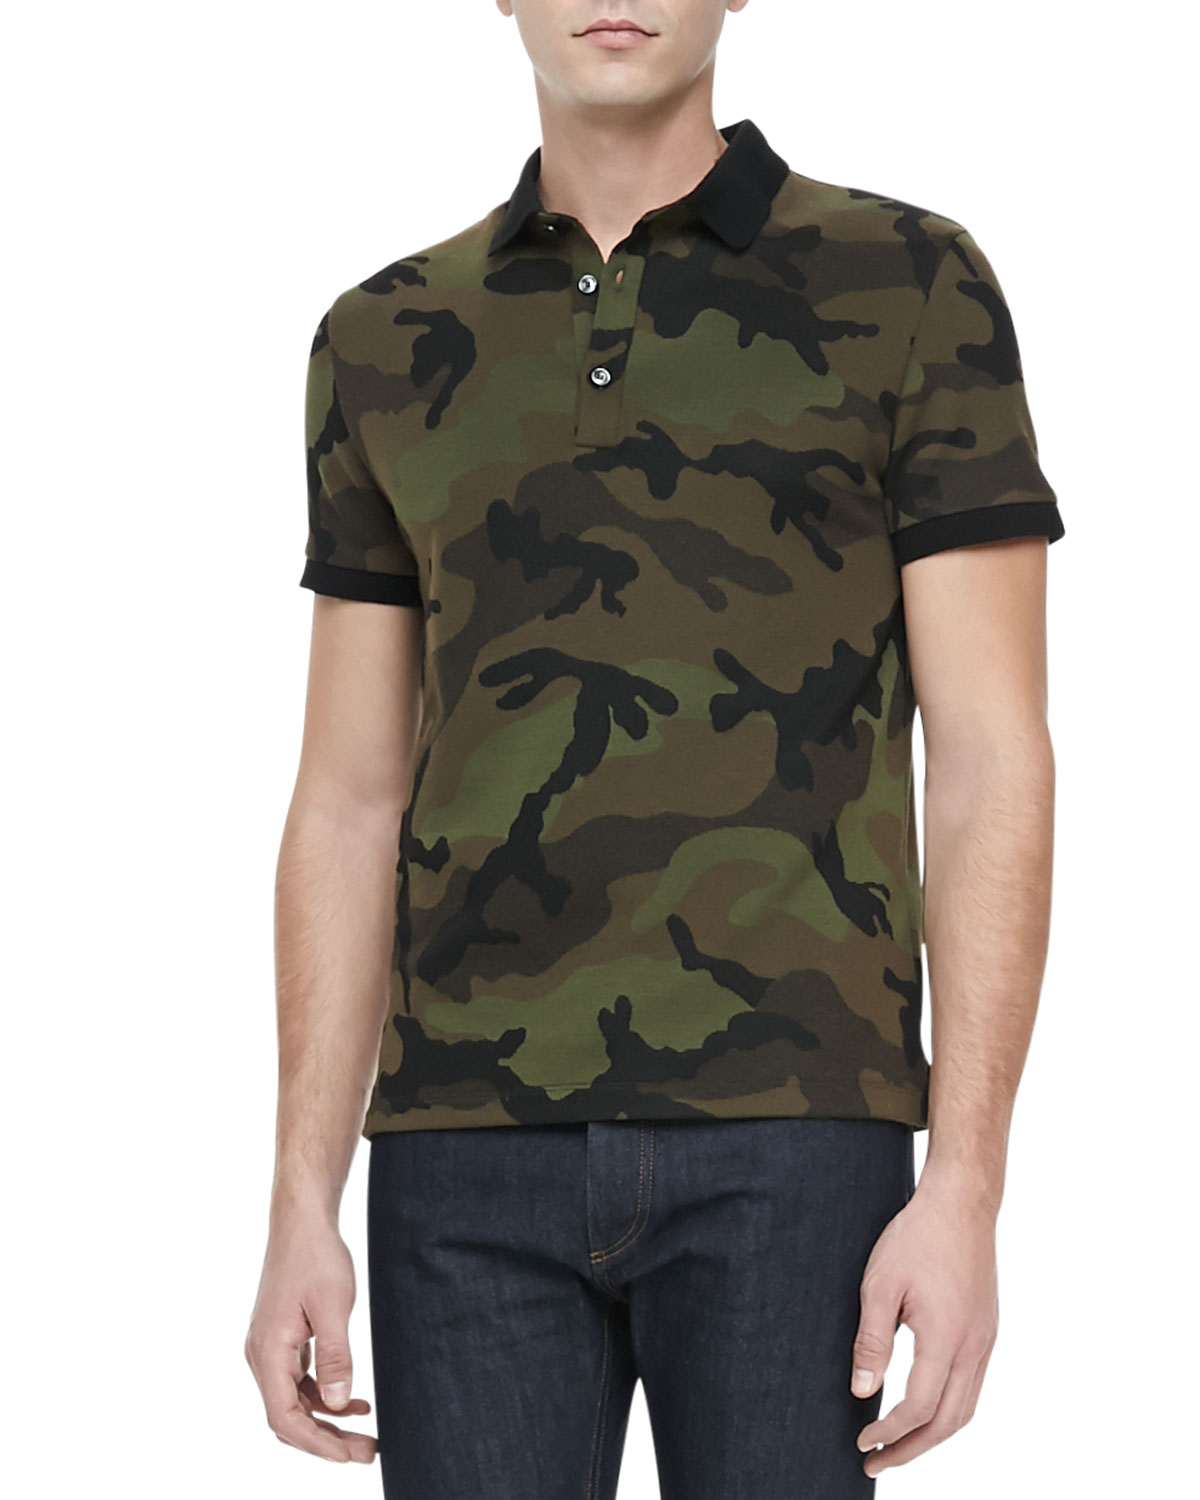 Camo-Print Short-Sleeve Polo, Green/Brown